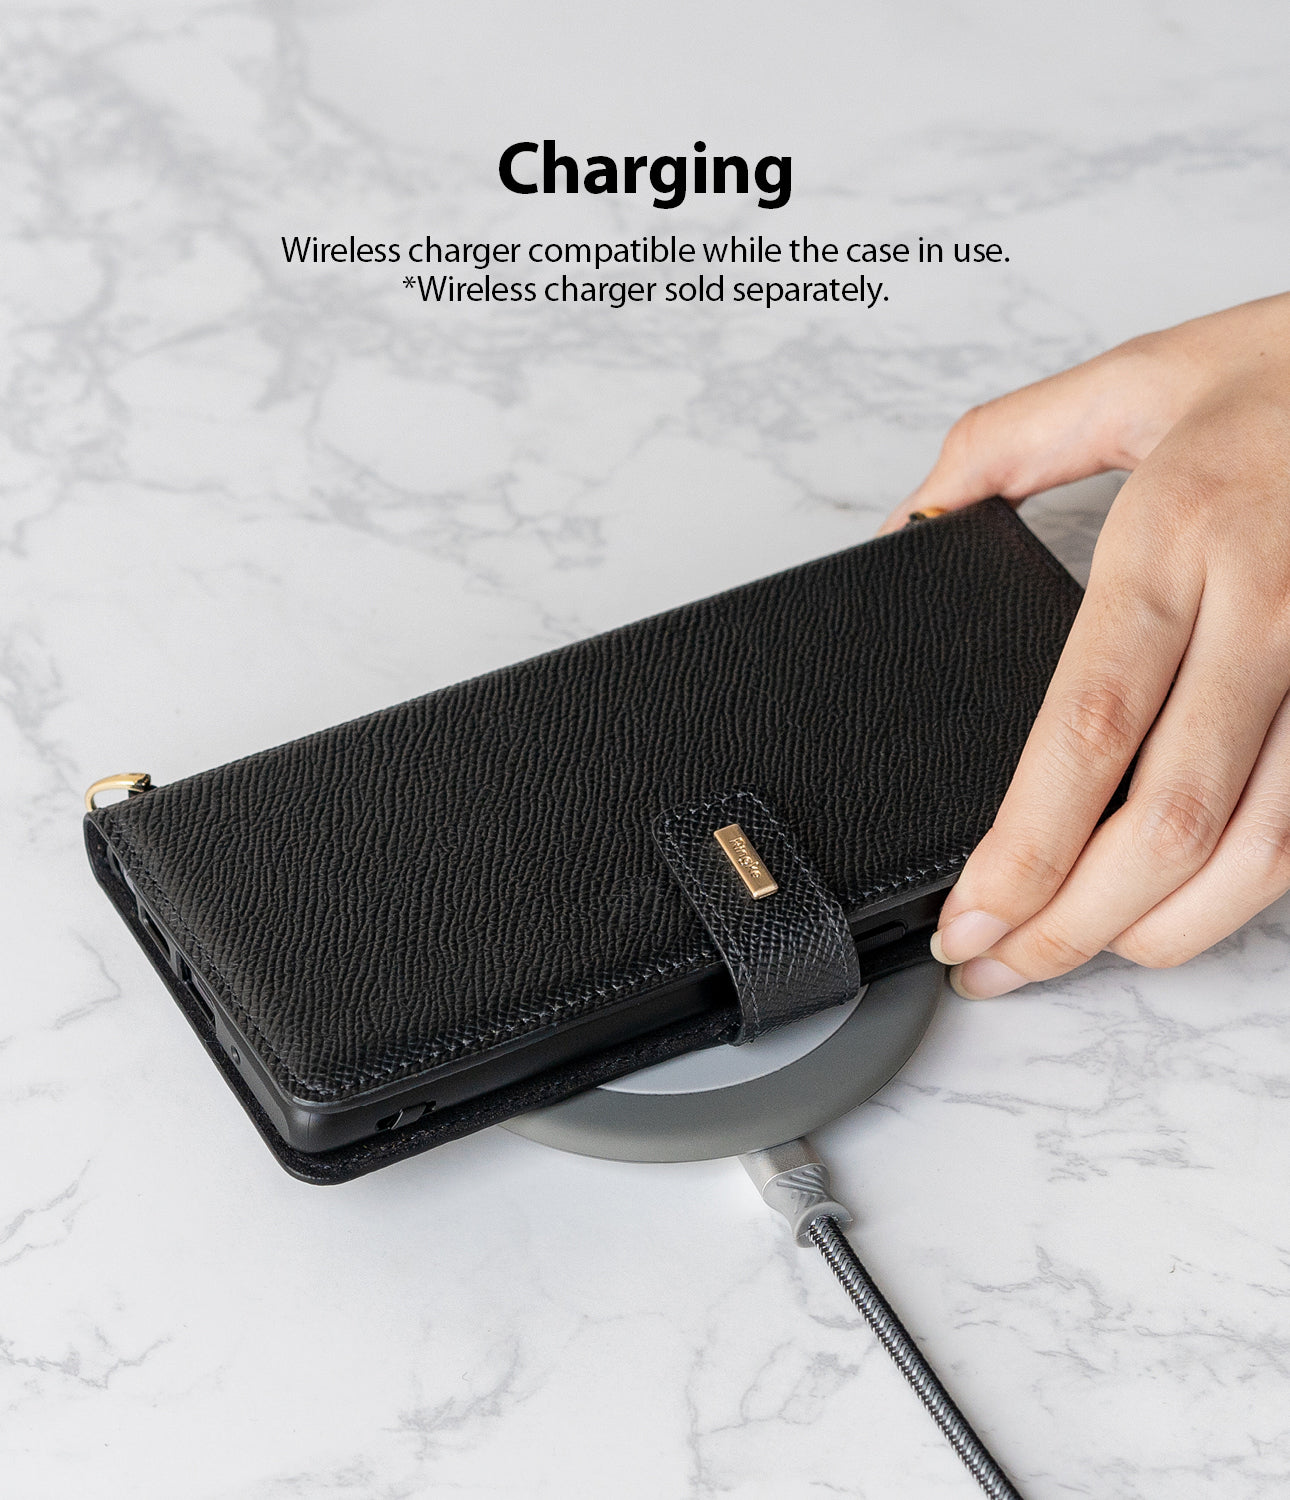 wireless charging compatible *power accessories not included